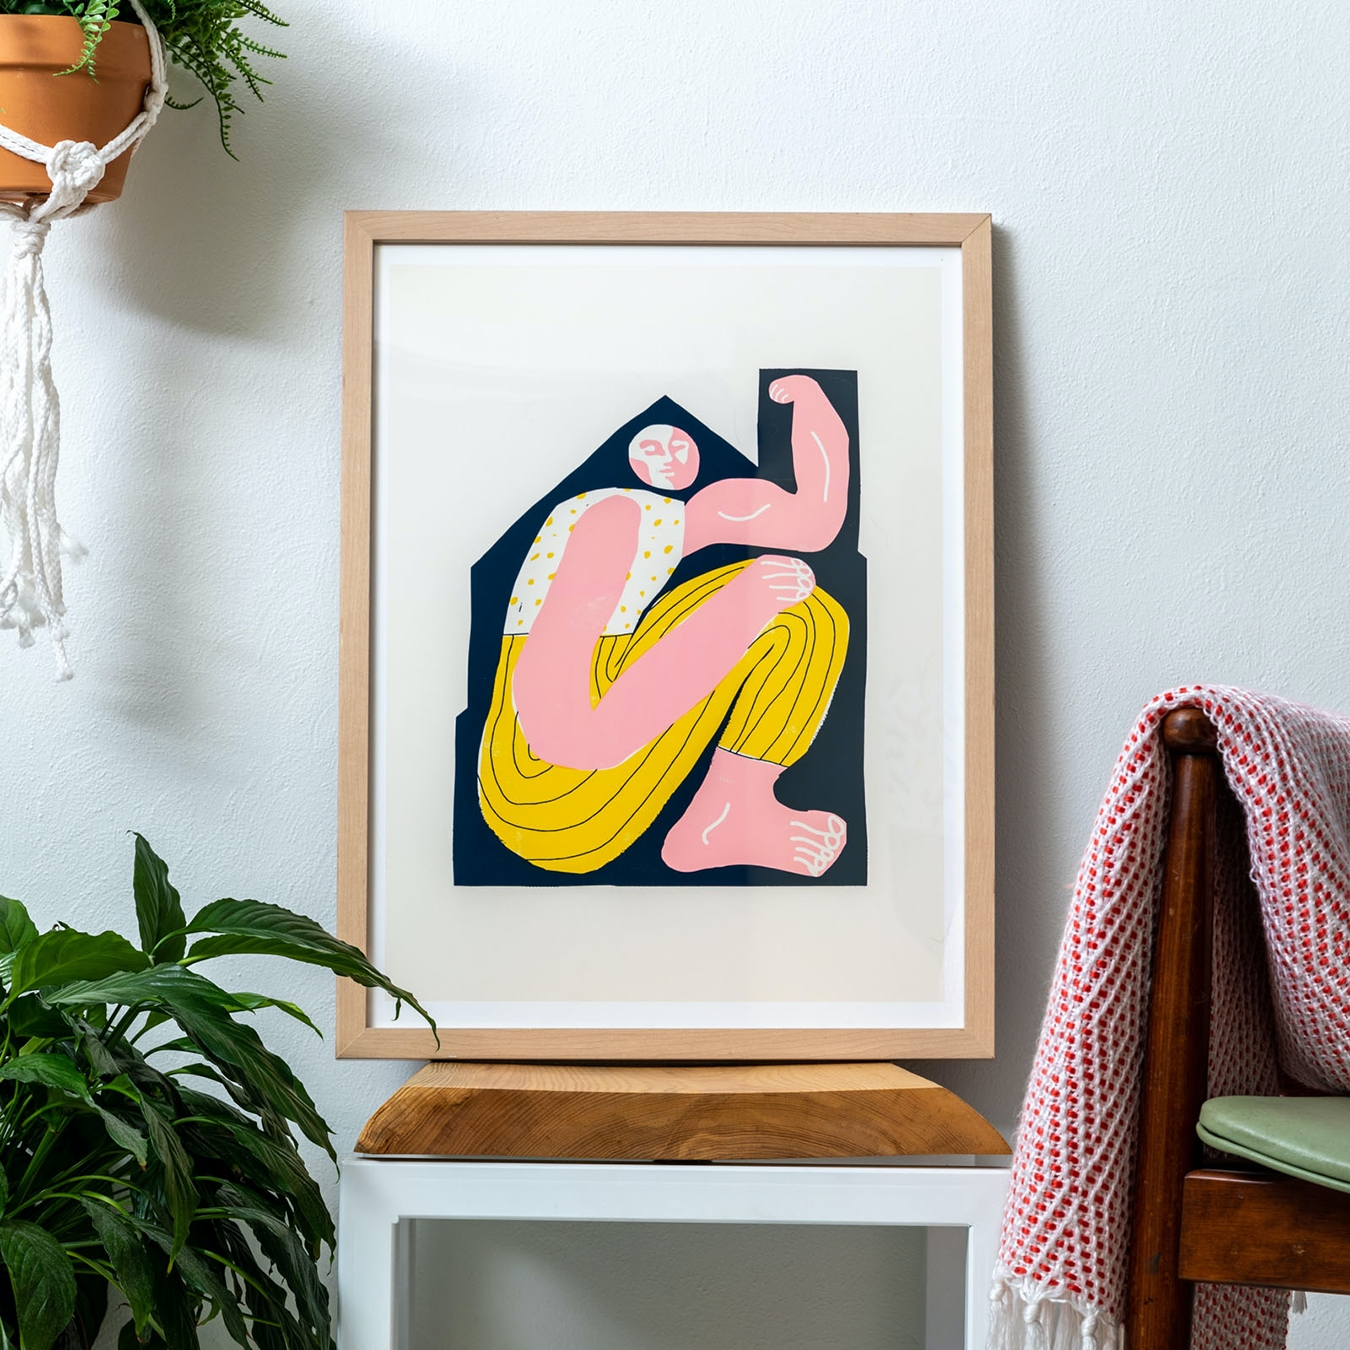 selling high quality giclée pri - grossillustration | ello